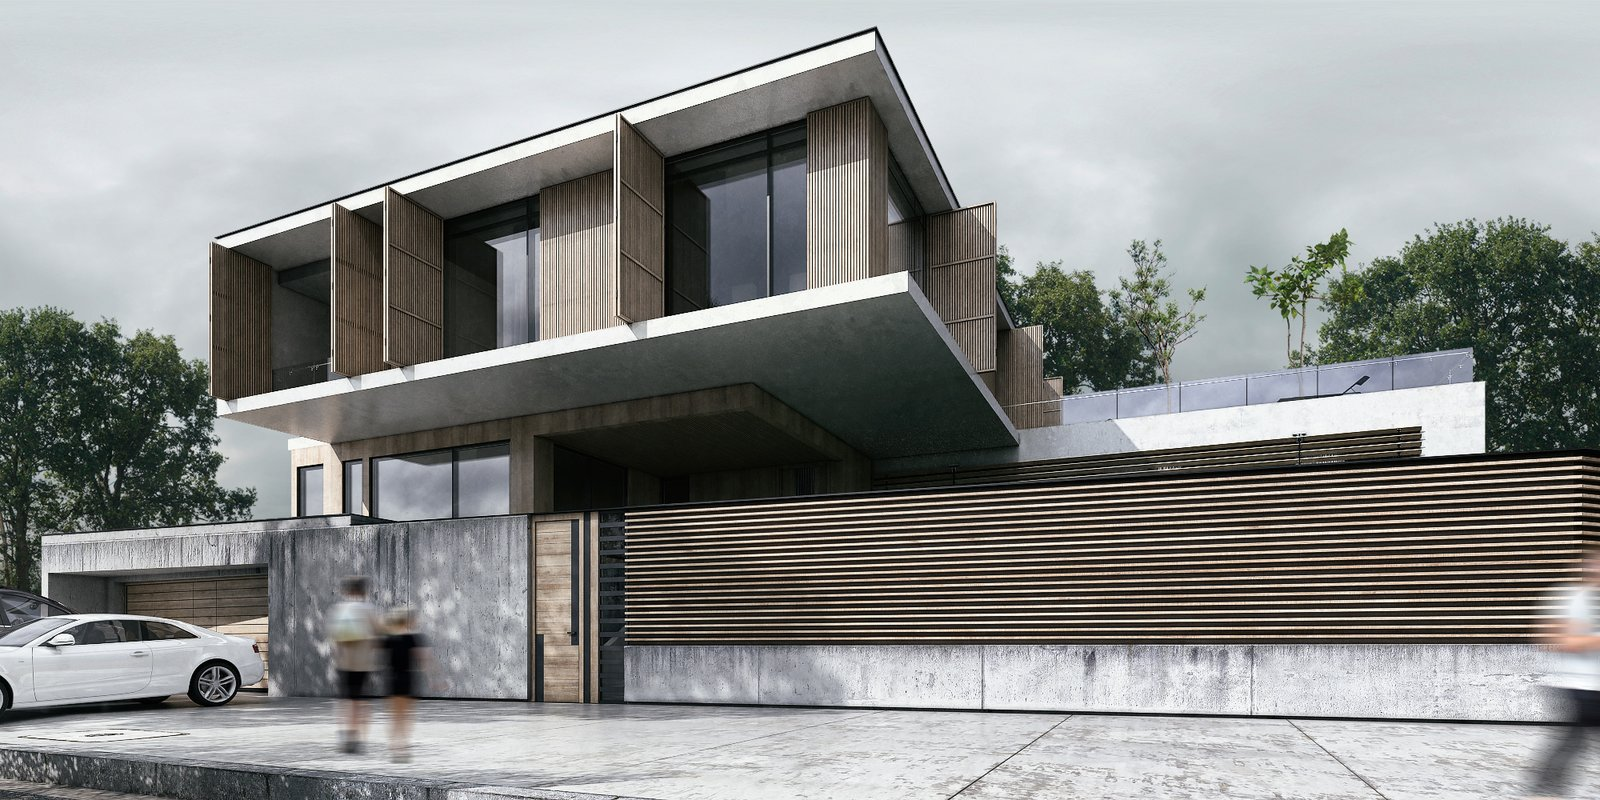 Day View of Villa  Monochrome Veil by Lines Design Creation and Consultancy